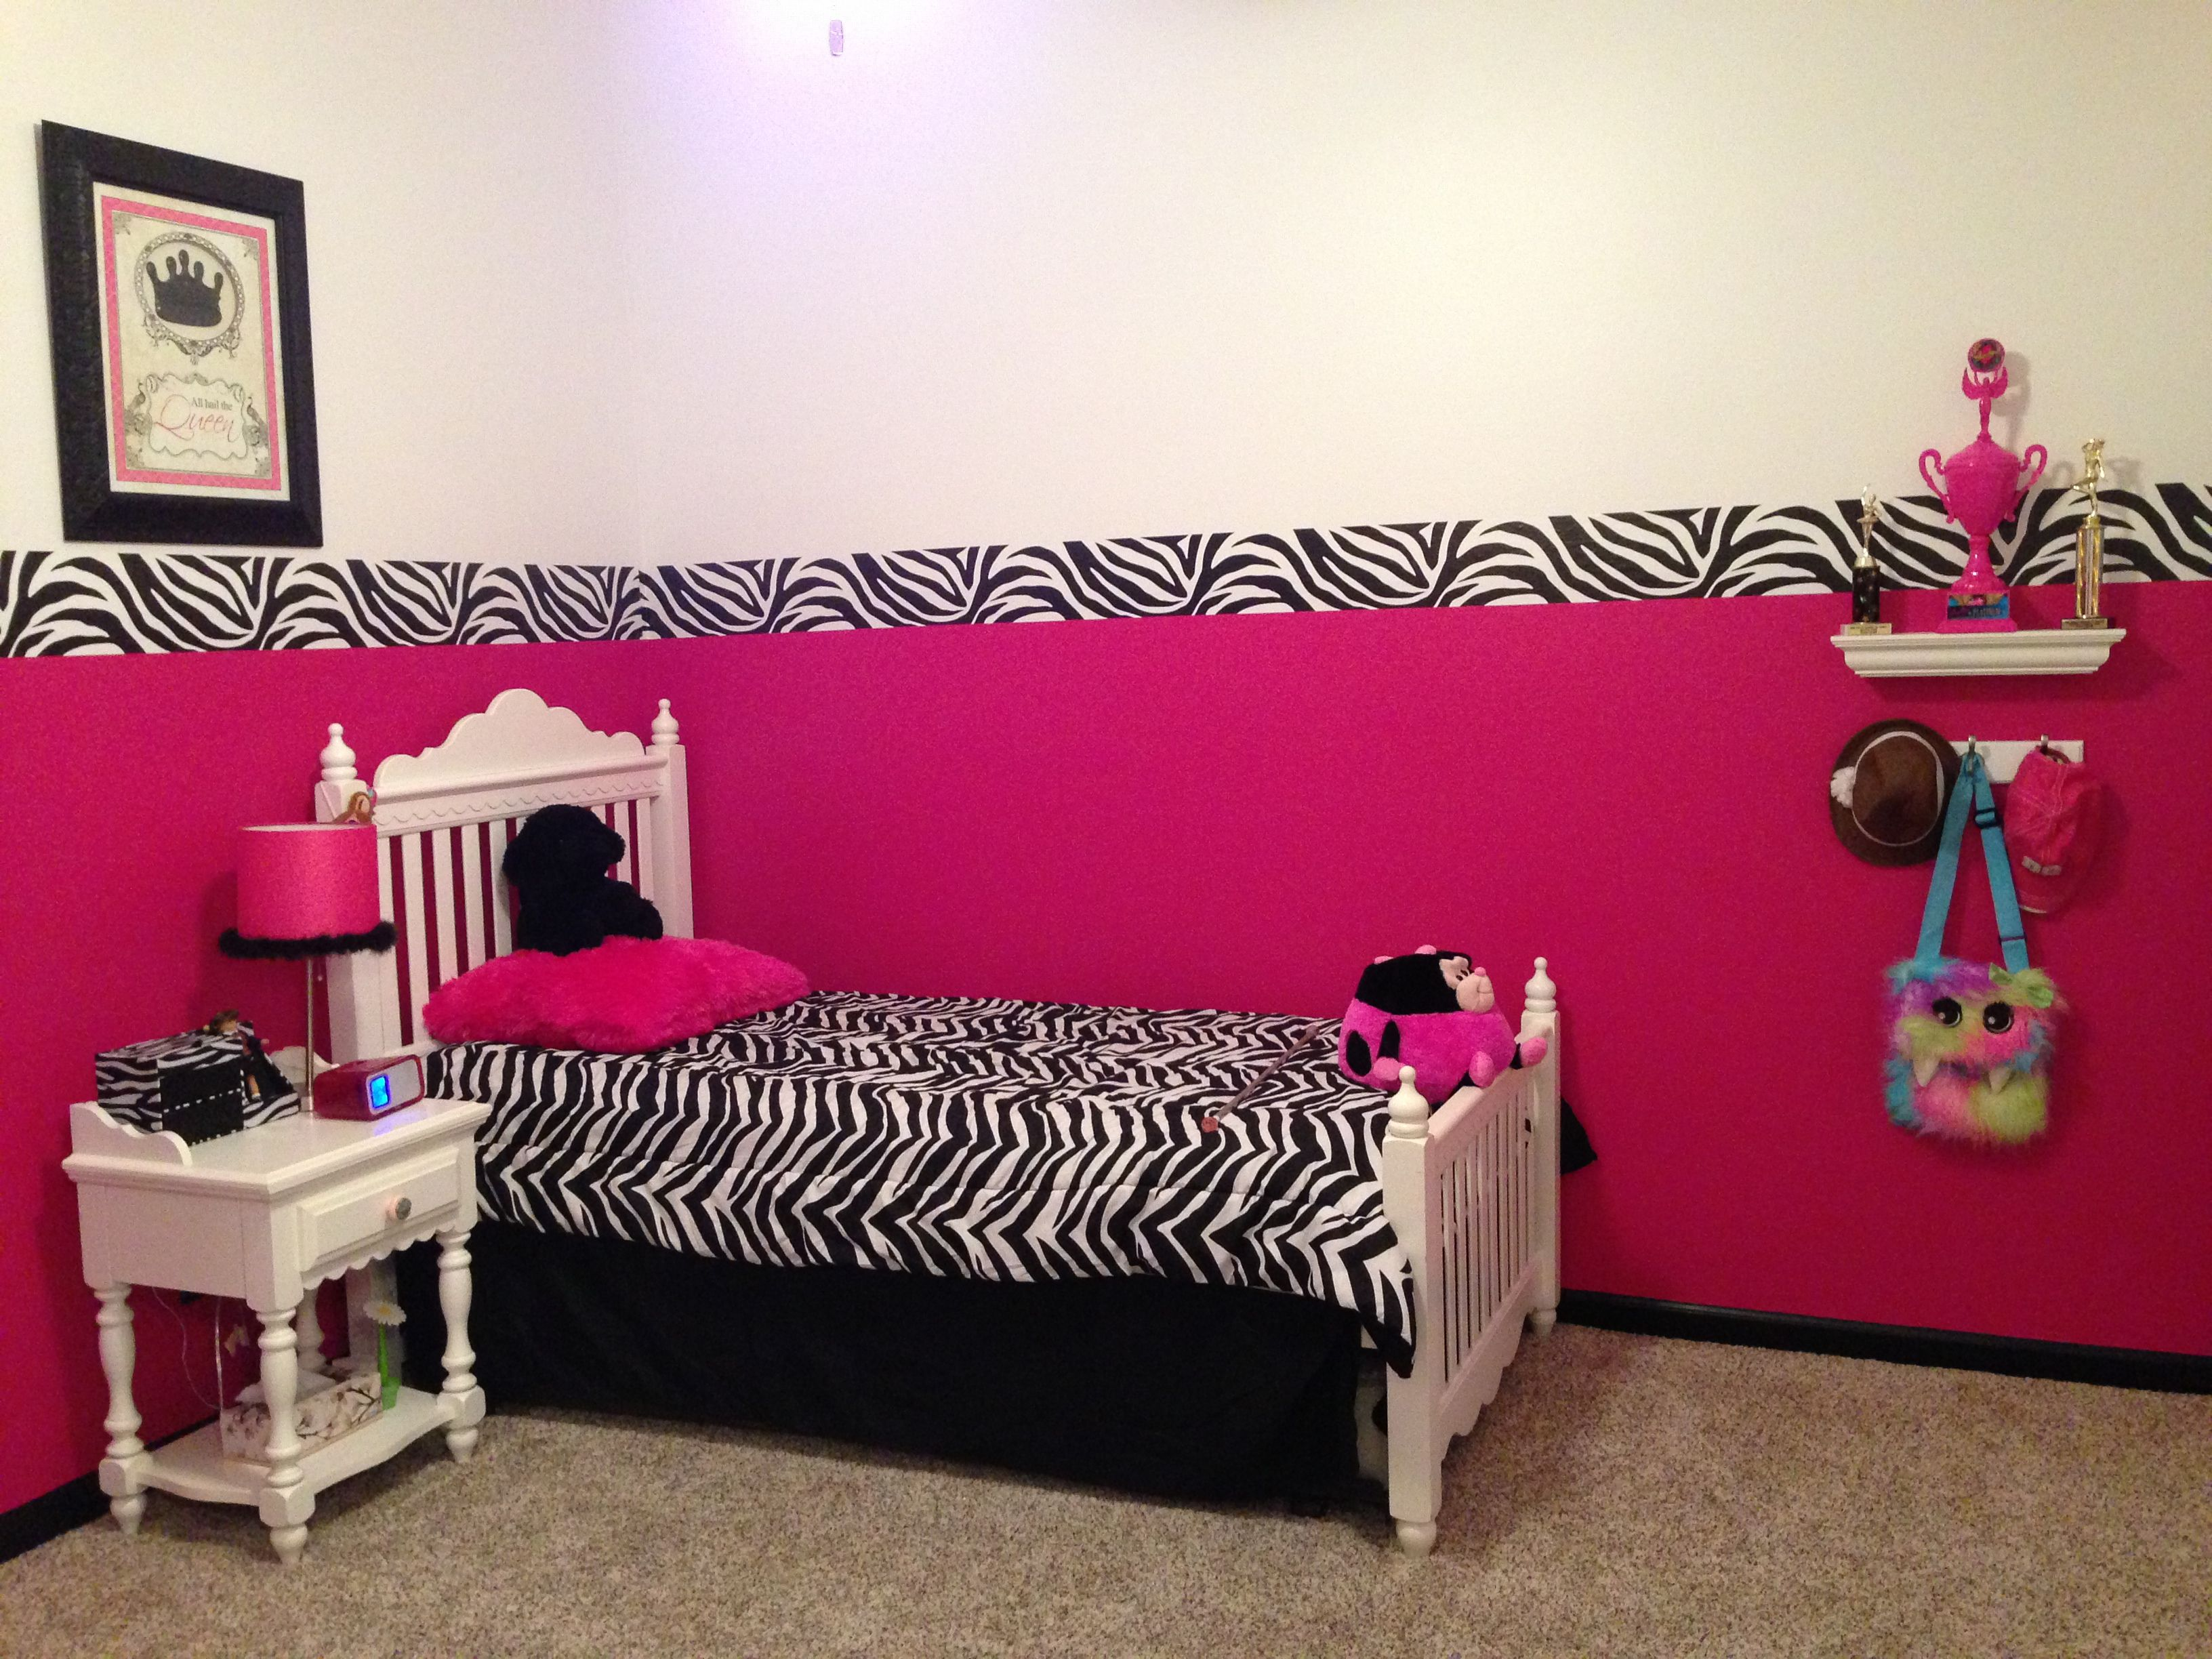 Hot pink zebra room pink zebra room decorating ideas pinterest - Hot pink room ideas ...